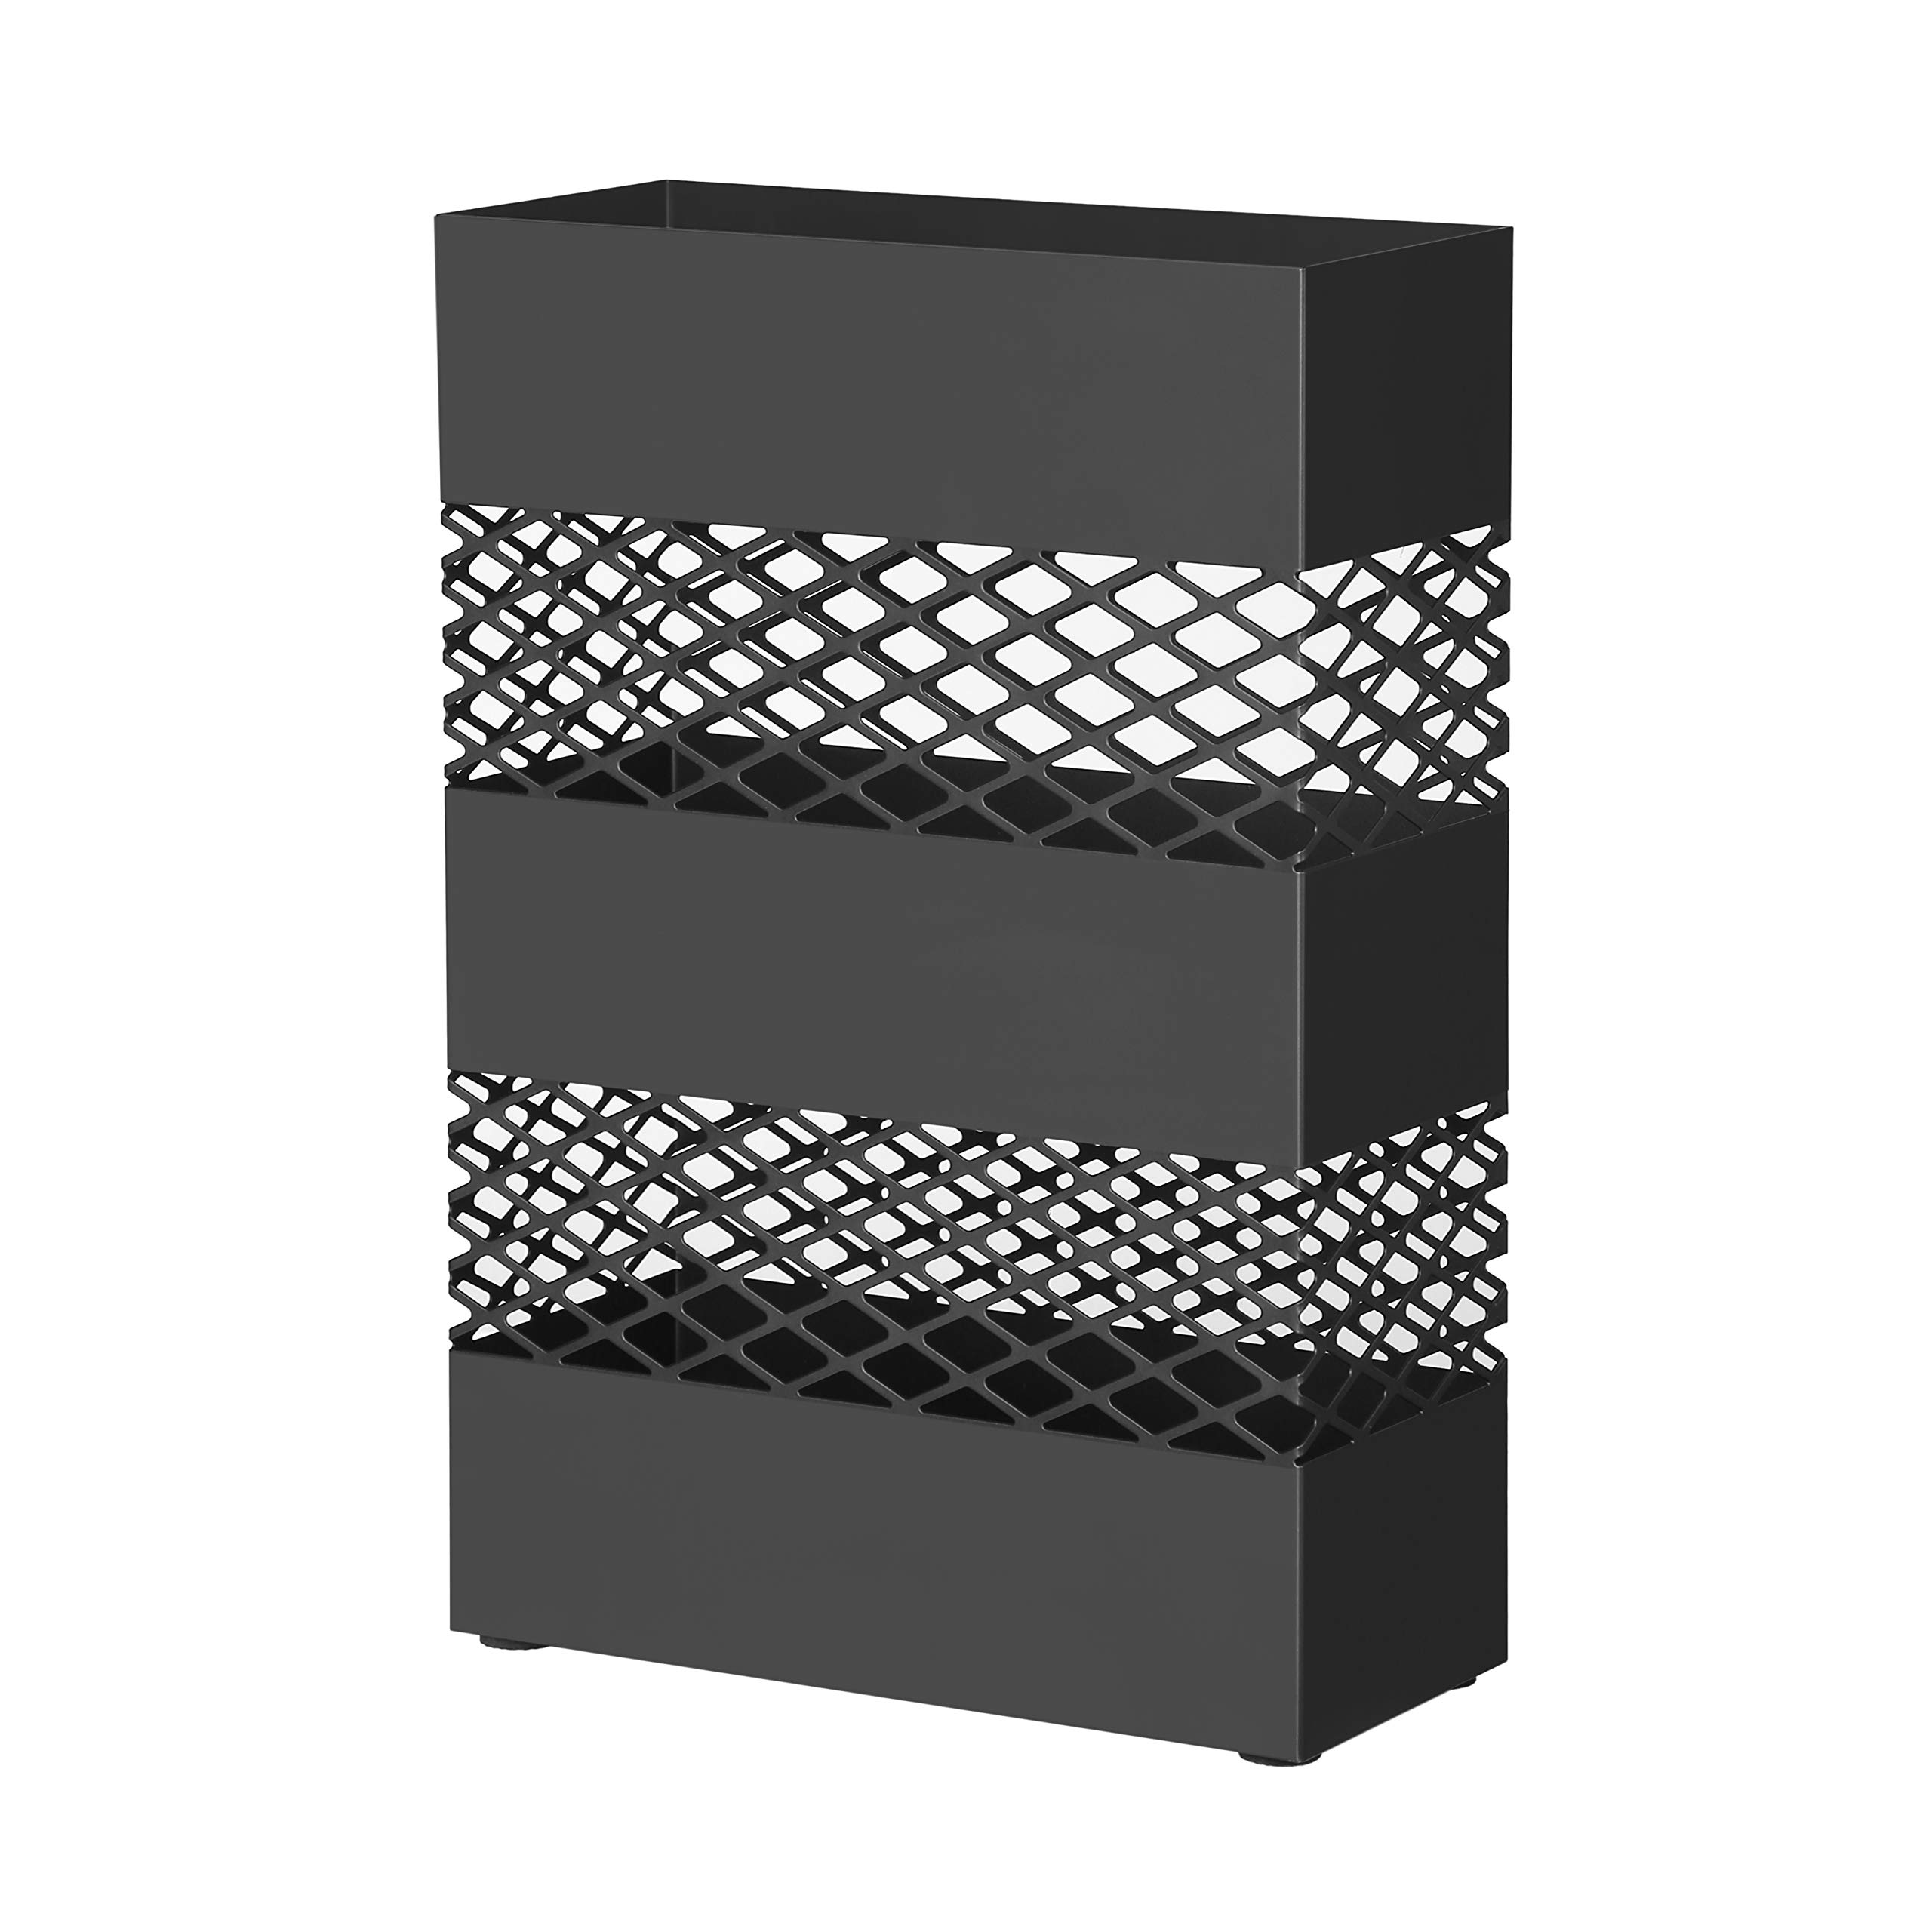 SONGMICS Metal Umbrella Stand, Rectangular Umbrella Holder Rack, with Removable Drip Tray, Lattice Cutouts, Black ULUC02BK by SONGMICS